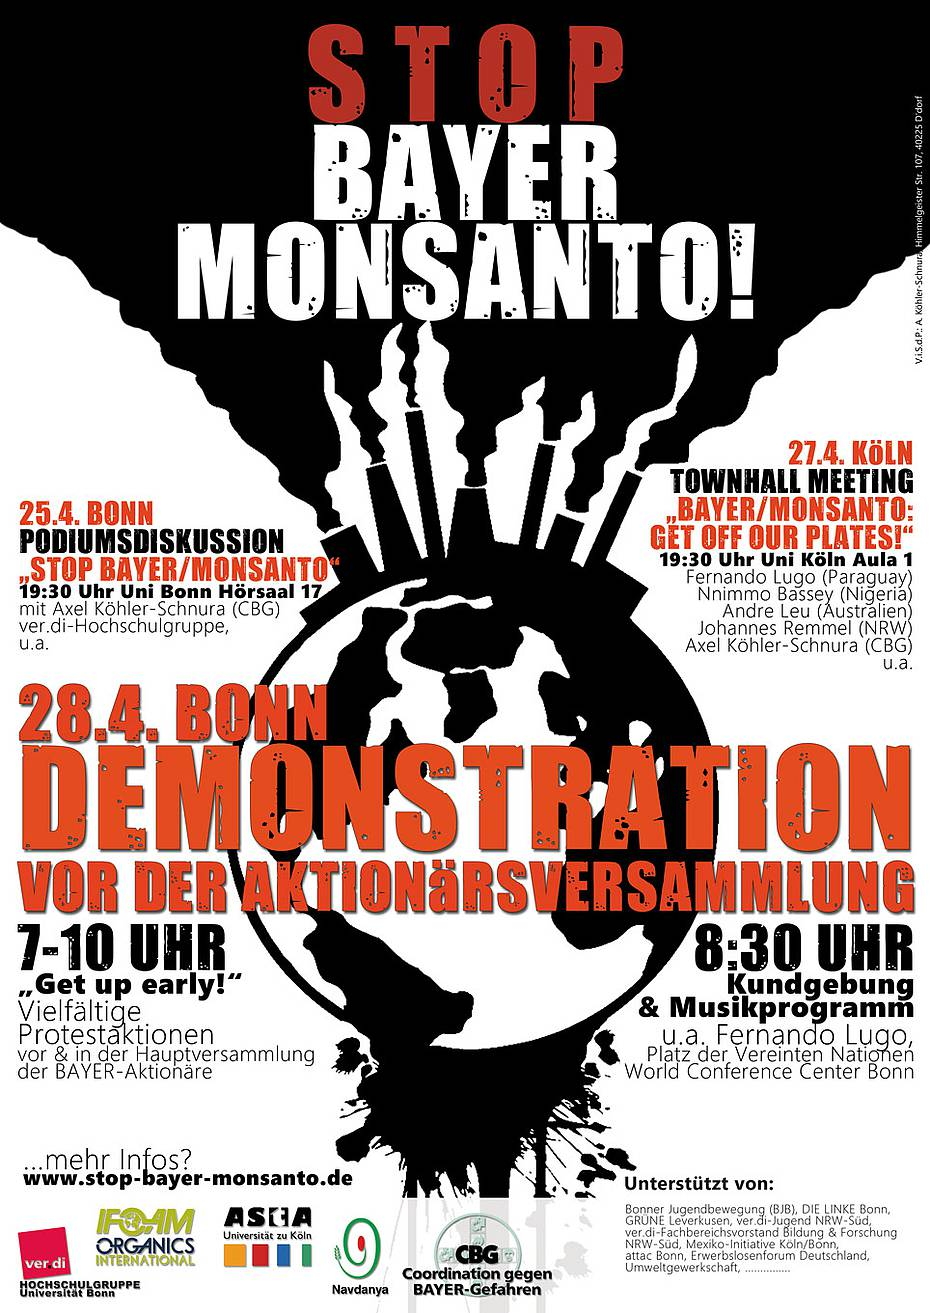 STOP BAYER/MONSANTO